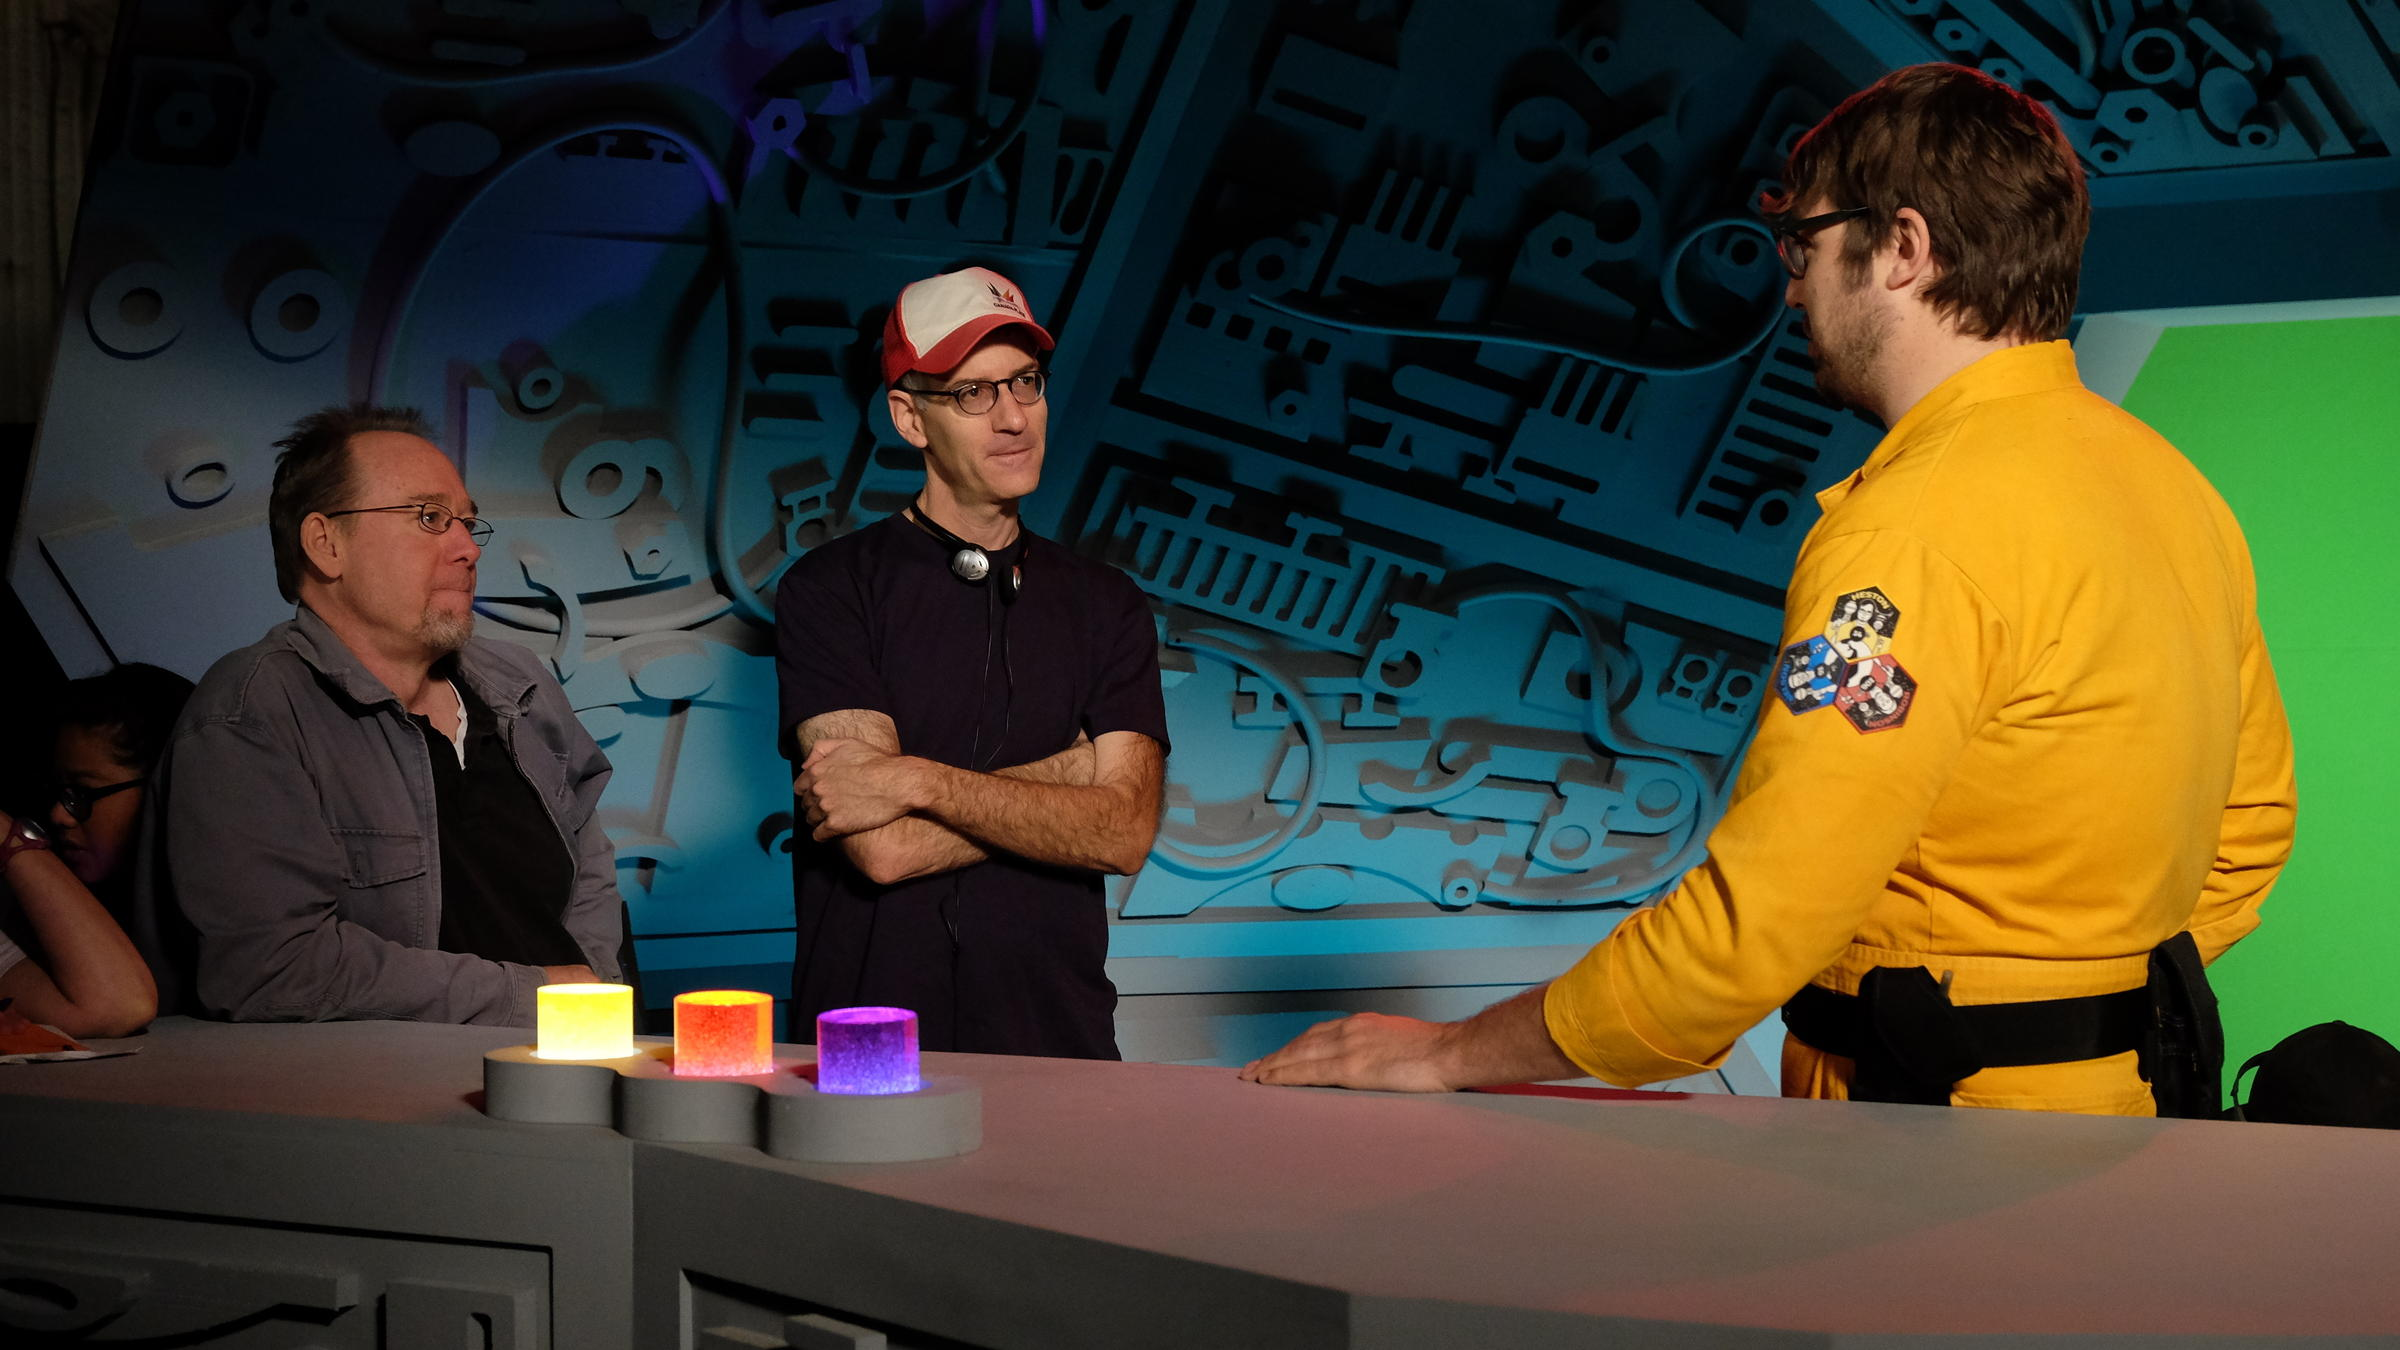 Mystery Science Theater 3000: The Return is now streaming on Netflix